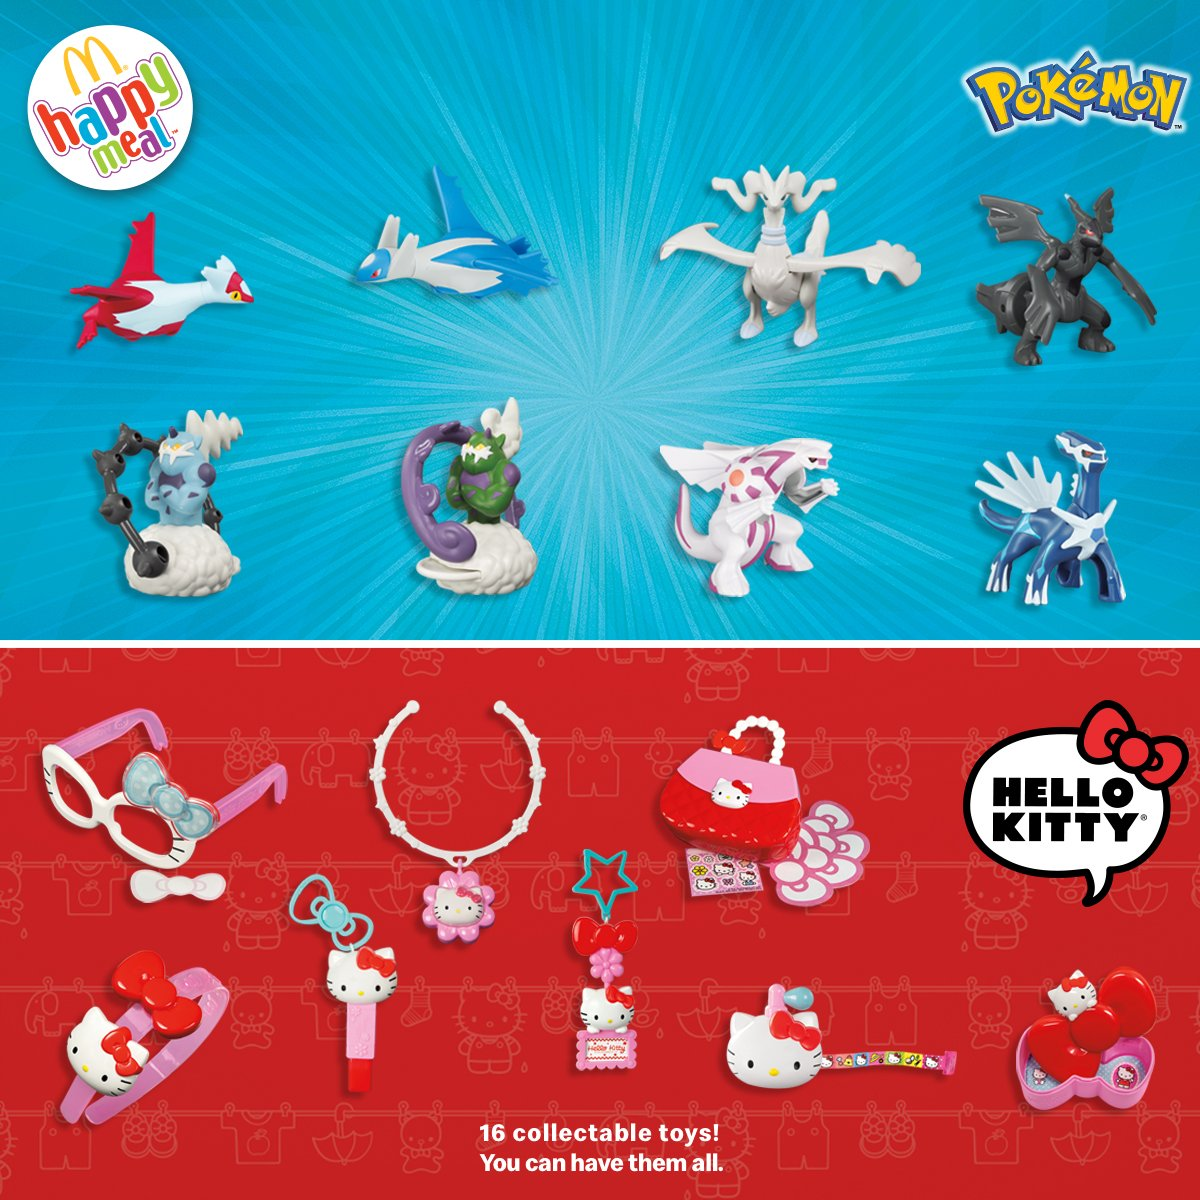 Yes, that's right - Pokémon and Hello Kitty are NOW available in your Happy Meal !  Pass by with your kids to have a good time. We are waiting for you !  #HappyMeal #Imlovinit #Pokemon #HelloKitty<br>http://pic.twitter.com/Bsu9CexsZ3